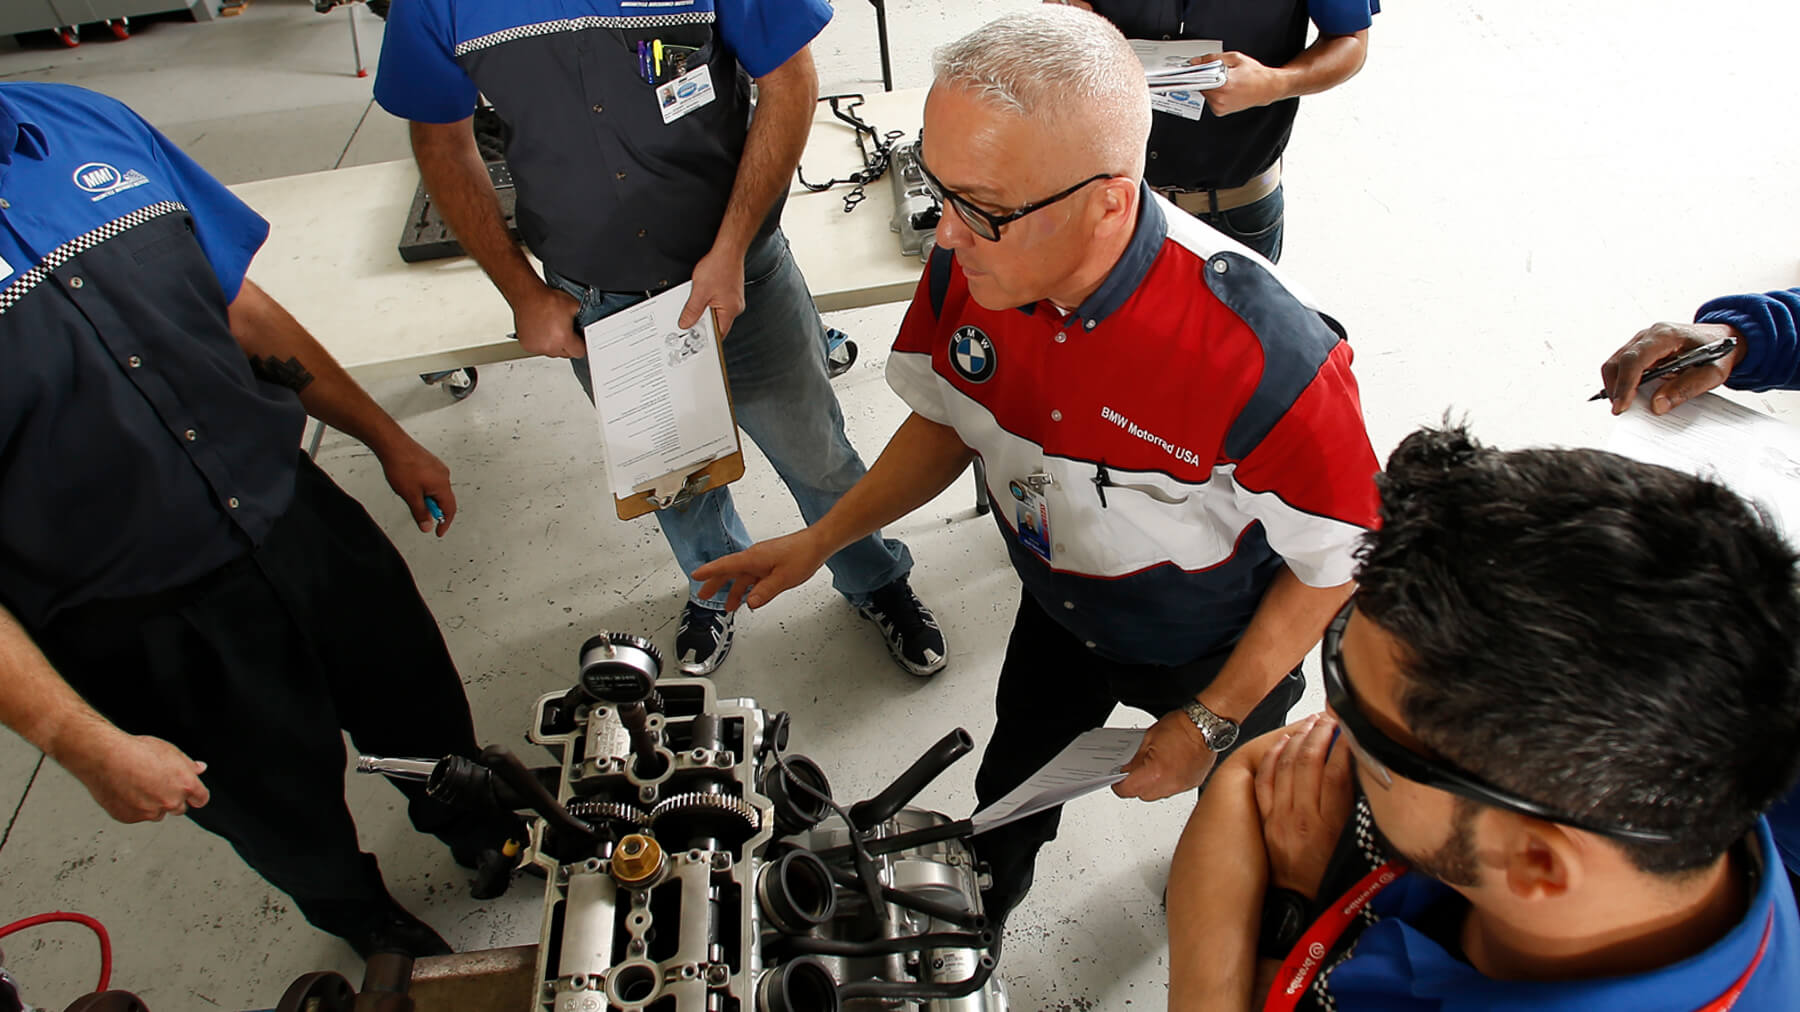 Motorcycle_Gallery_BMW_ORL_BMW_MOTOR_0366